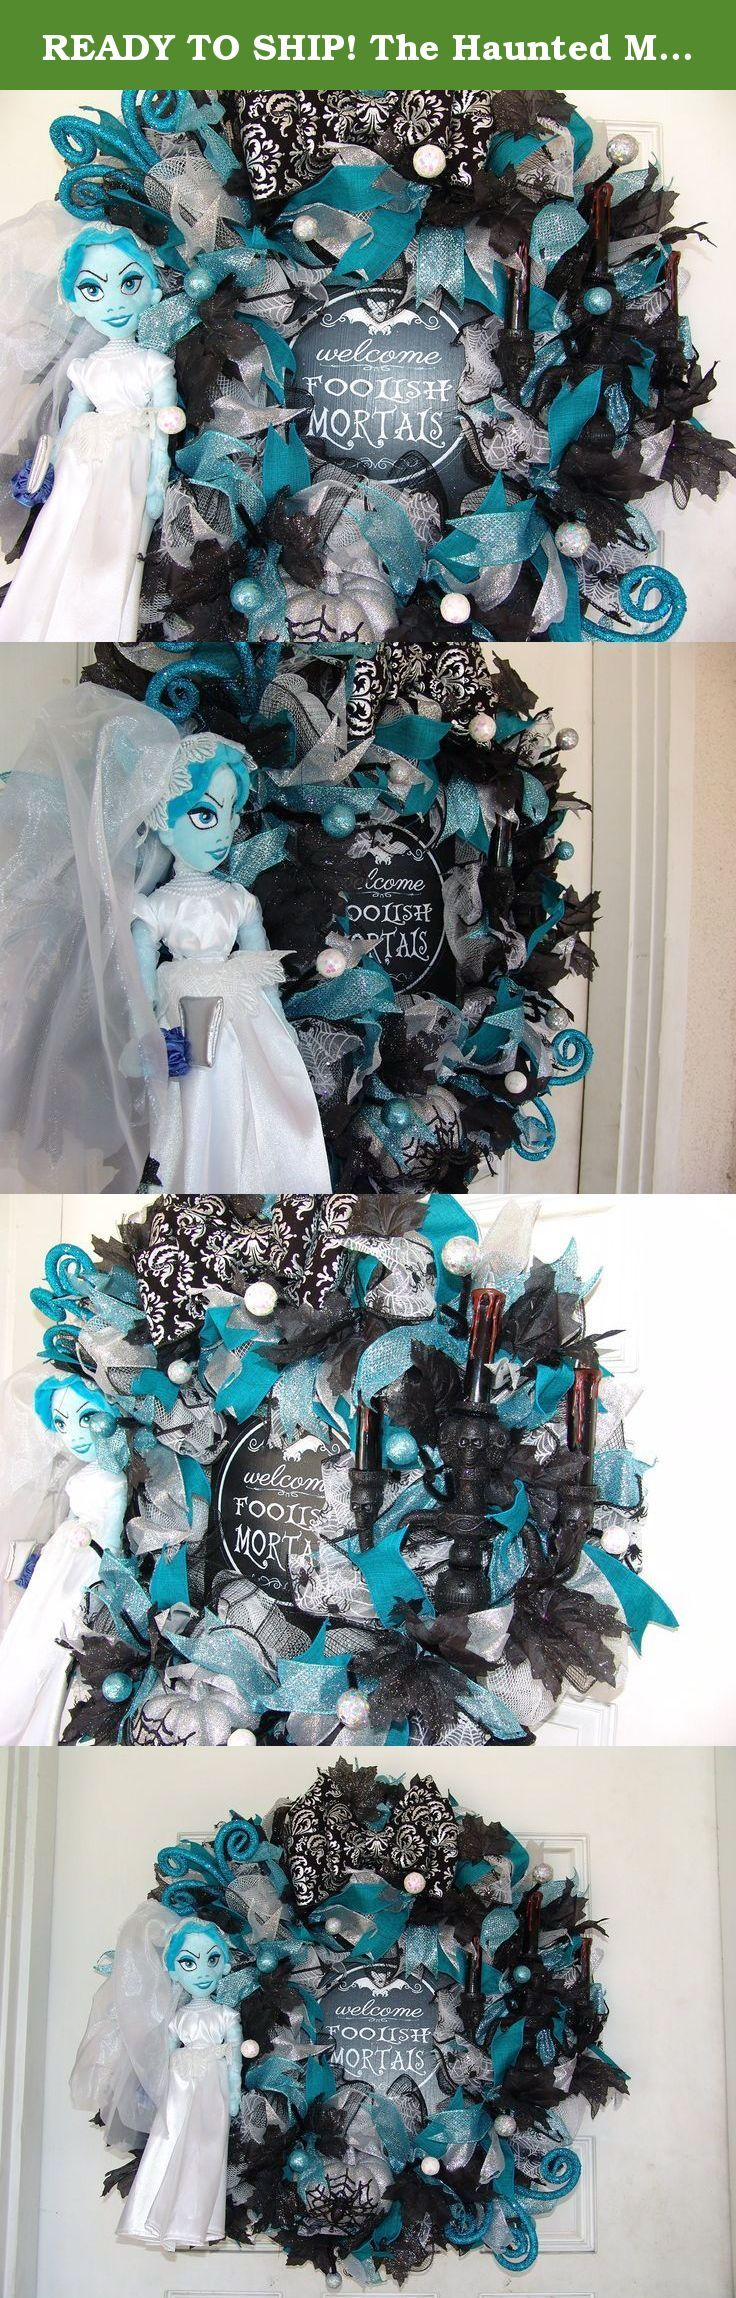 READY TO SHIP! The Haunted Mansion Ghost Bride Halloween Wreath Decor Disney, Gift, Door, Decoration, Floating Light up Candelabra, Welcome Foolish Mortals. If you think this looks awesome from the photo, wait until you see it in person. The pictures really don't do it justice! Please note that I also have a matching Haunted Mansion Hitchhiking Ghosts wreath for sale as well. Sold separately. A gorgeous must have pair of wreaths, especially if you have double doors. Be sure to check that…